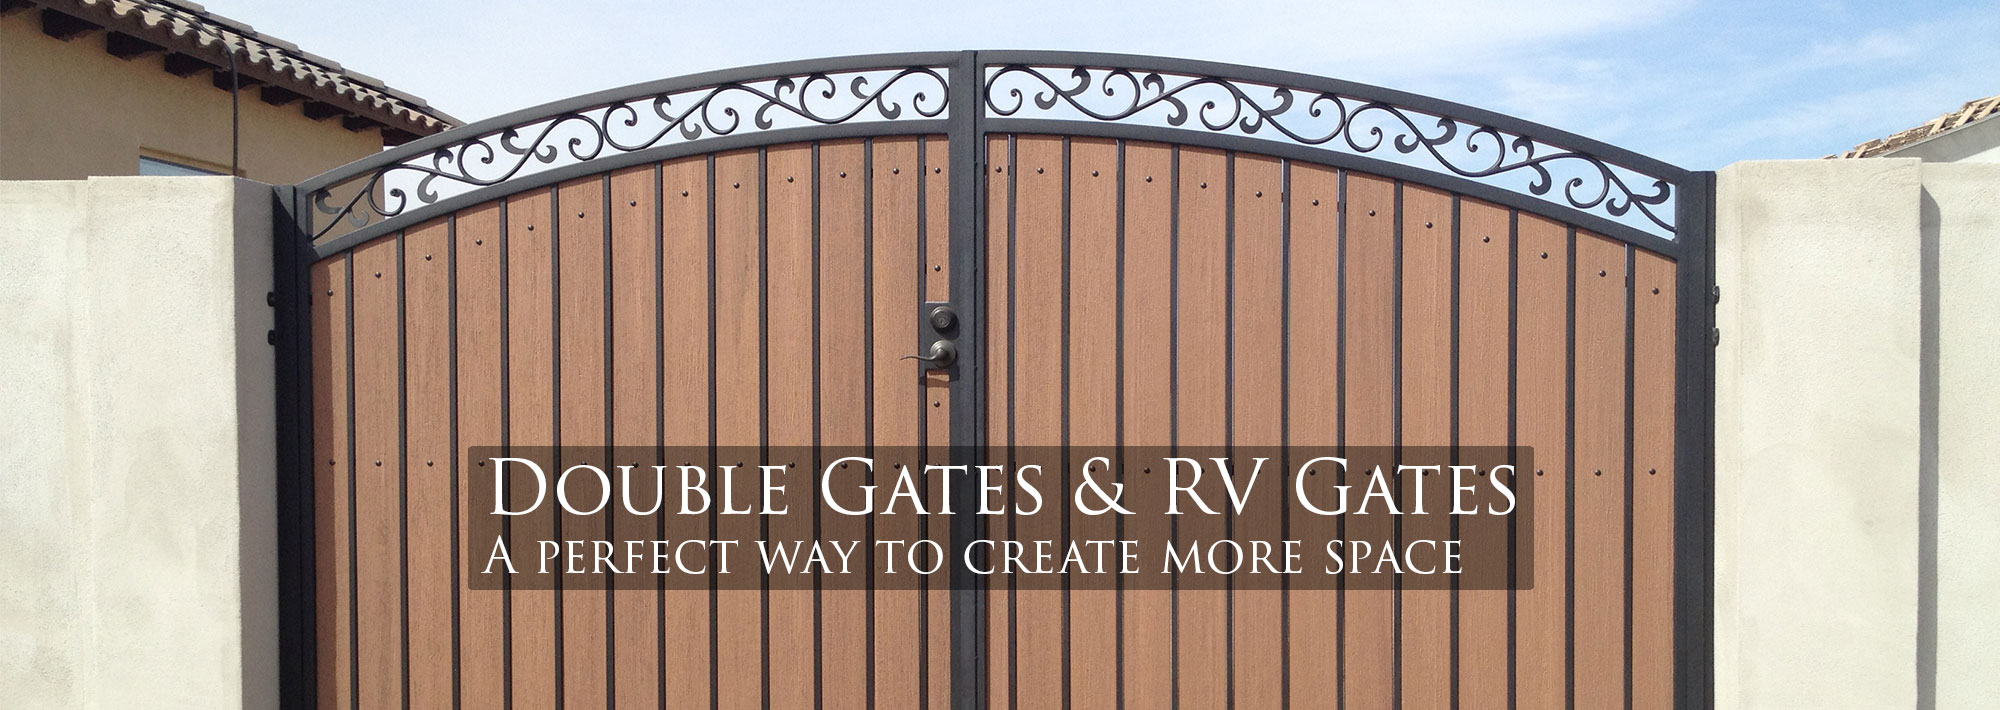 Sunset Gates Wrought Iron Gates Fencing Phoenix Arizona